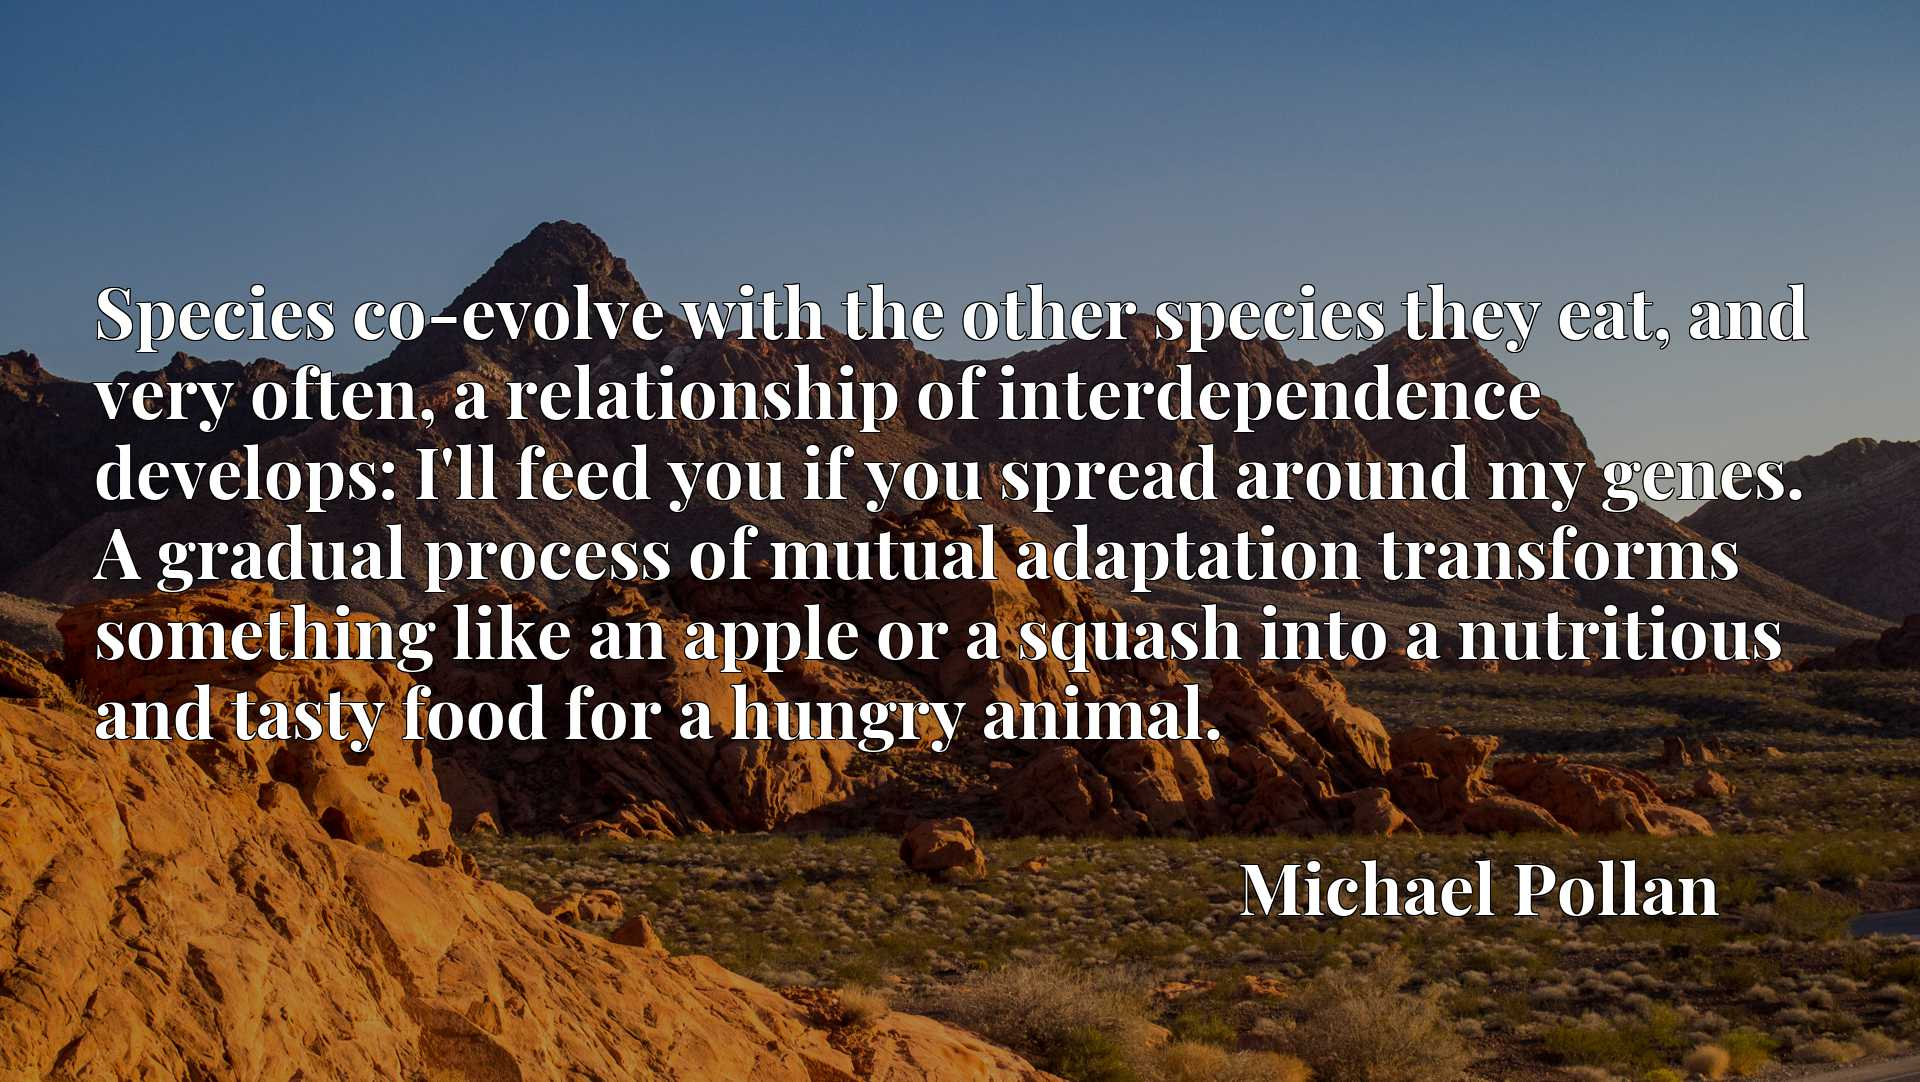 Species co-evolve with the other species they eat, and very often, a relationship of interdependence develops: I'll feed you if you spread around my genes. A gradual process of mutual adaptation transforms something like an apple or a squash into a nutritious and tasty food for a hungry animal.